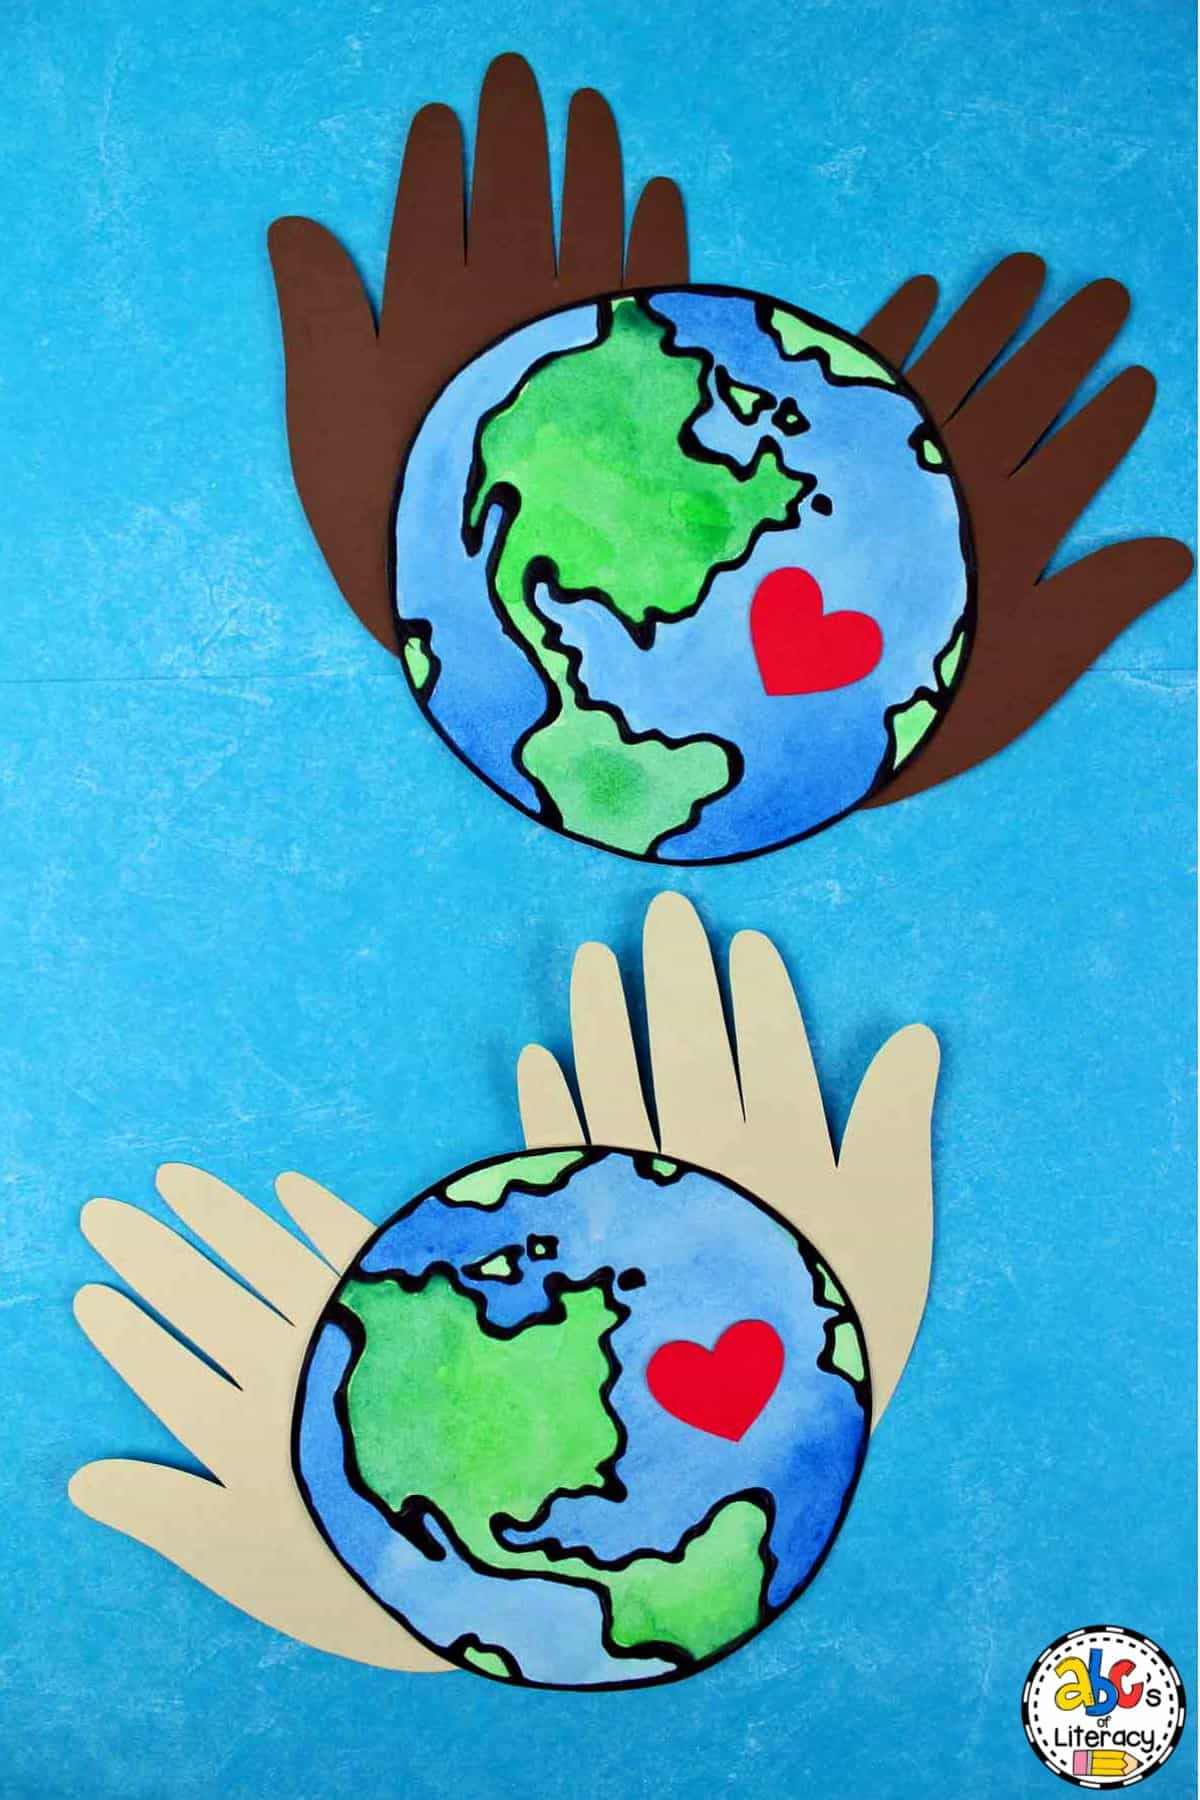 Earth Day, Earth Day Craft, Earth Day Activity, Earth Day Hand Print Craft, Hand Print Craft, Celebrate Earth Day